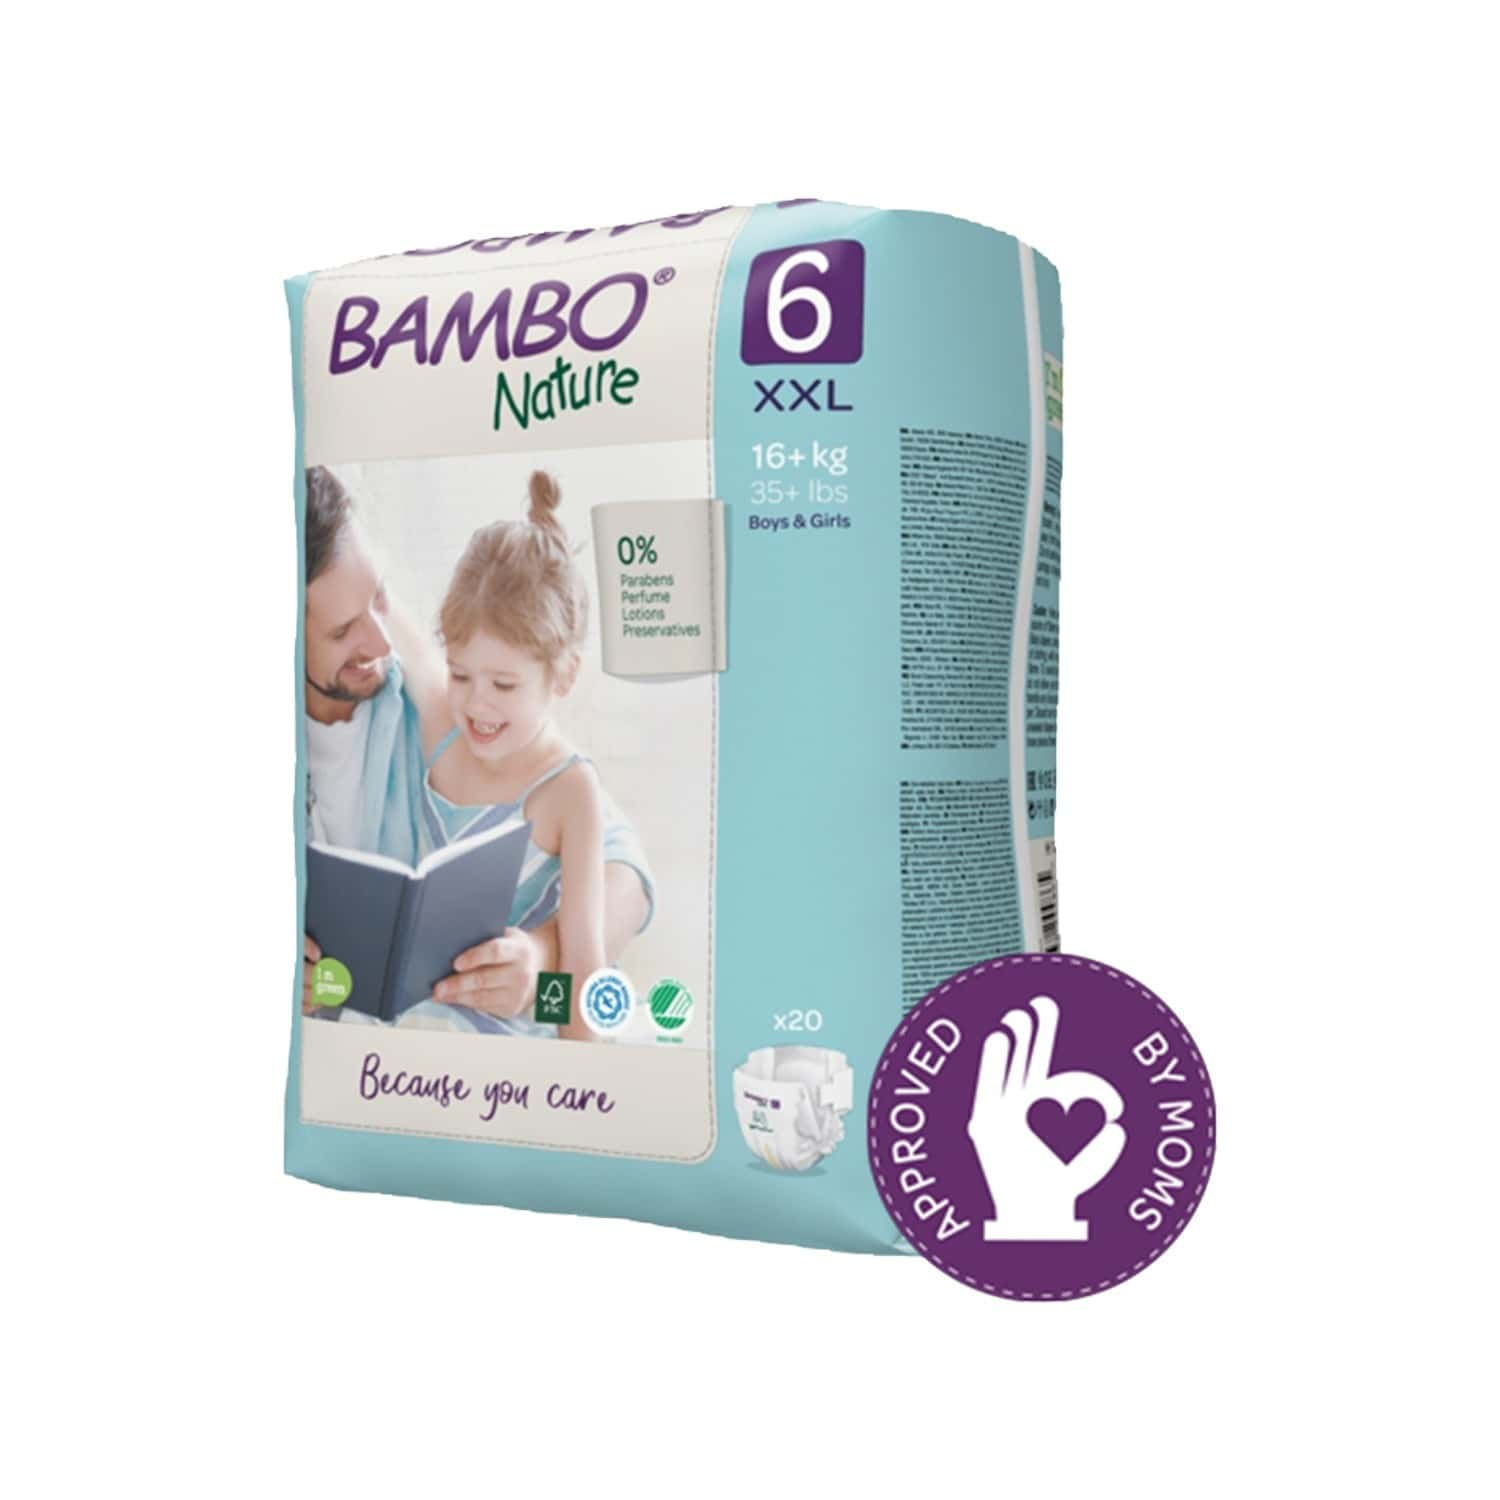 Bambo Nature Xxl Size Diaper With Wetness Indicator - 20 Diapers